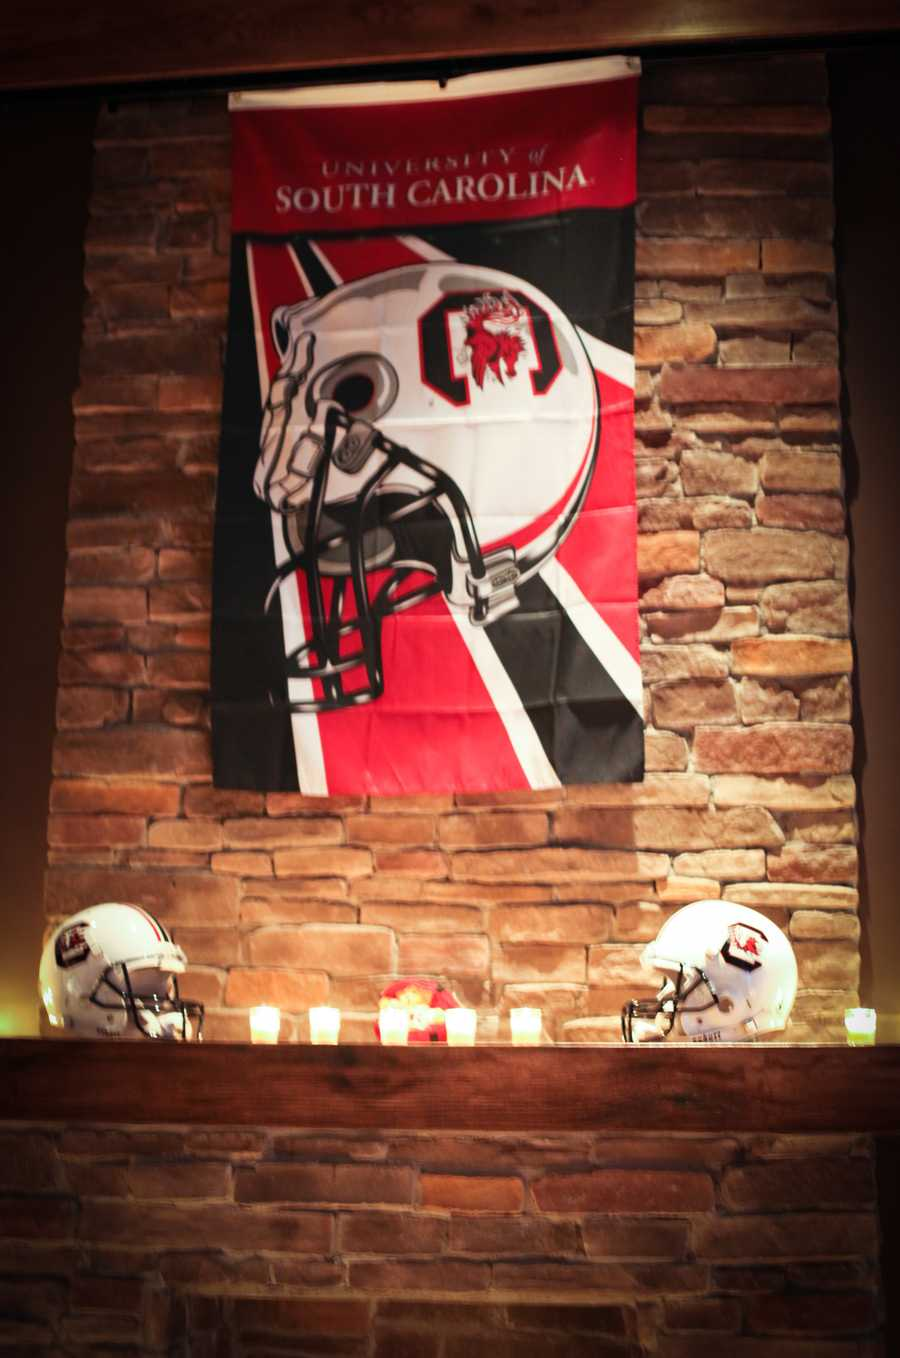 Even a flag is used for decoration on a wall to show the couples team spirit. The football helmets look great with the candle lighting too.